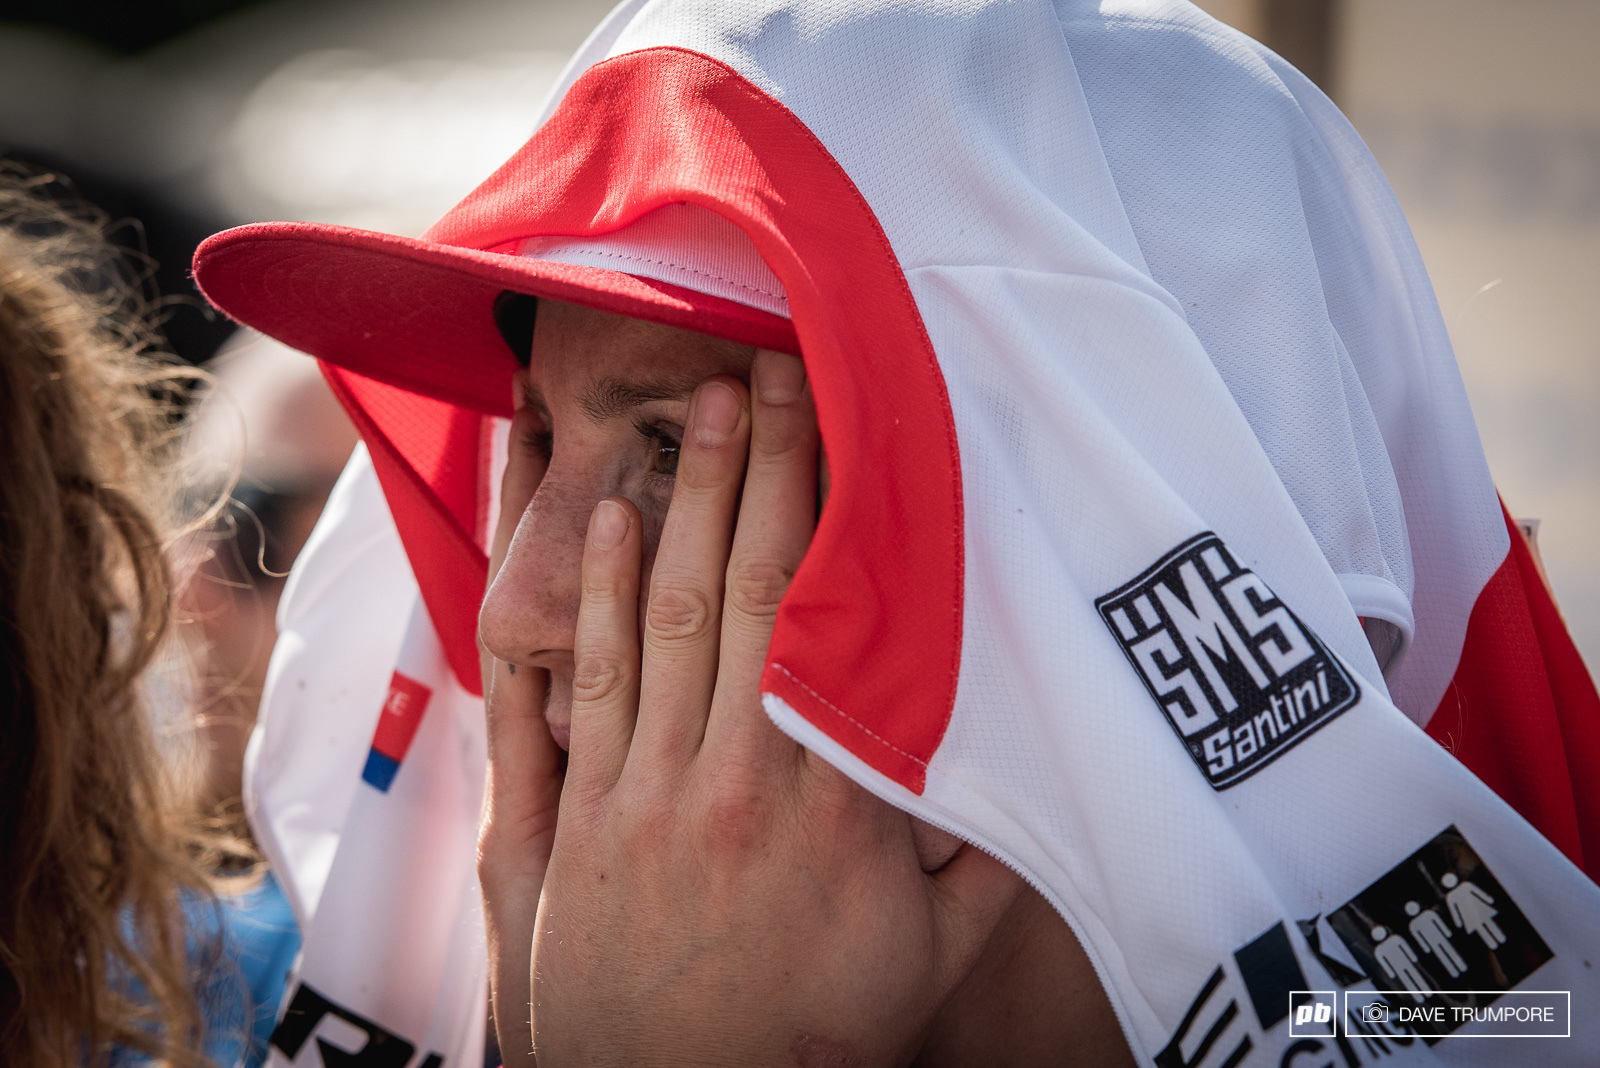 Rachel s reaction as she watched Gee s crash on the big screen in the finish arena. While his crash may not have looked that severe on the live feed believe us when we say he took a big slam in one of the gnarlier rock sections and his status for next weekend is questionable.